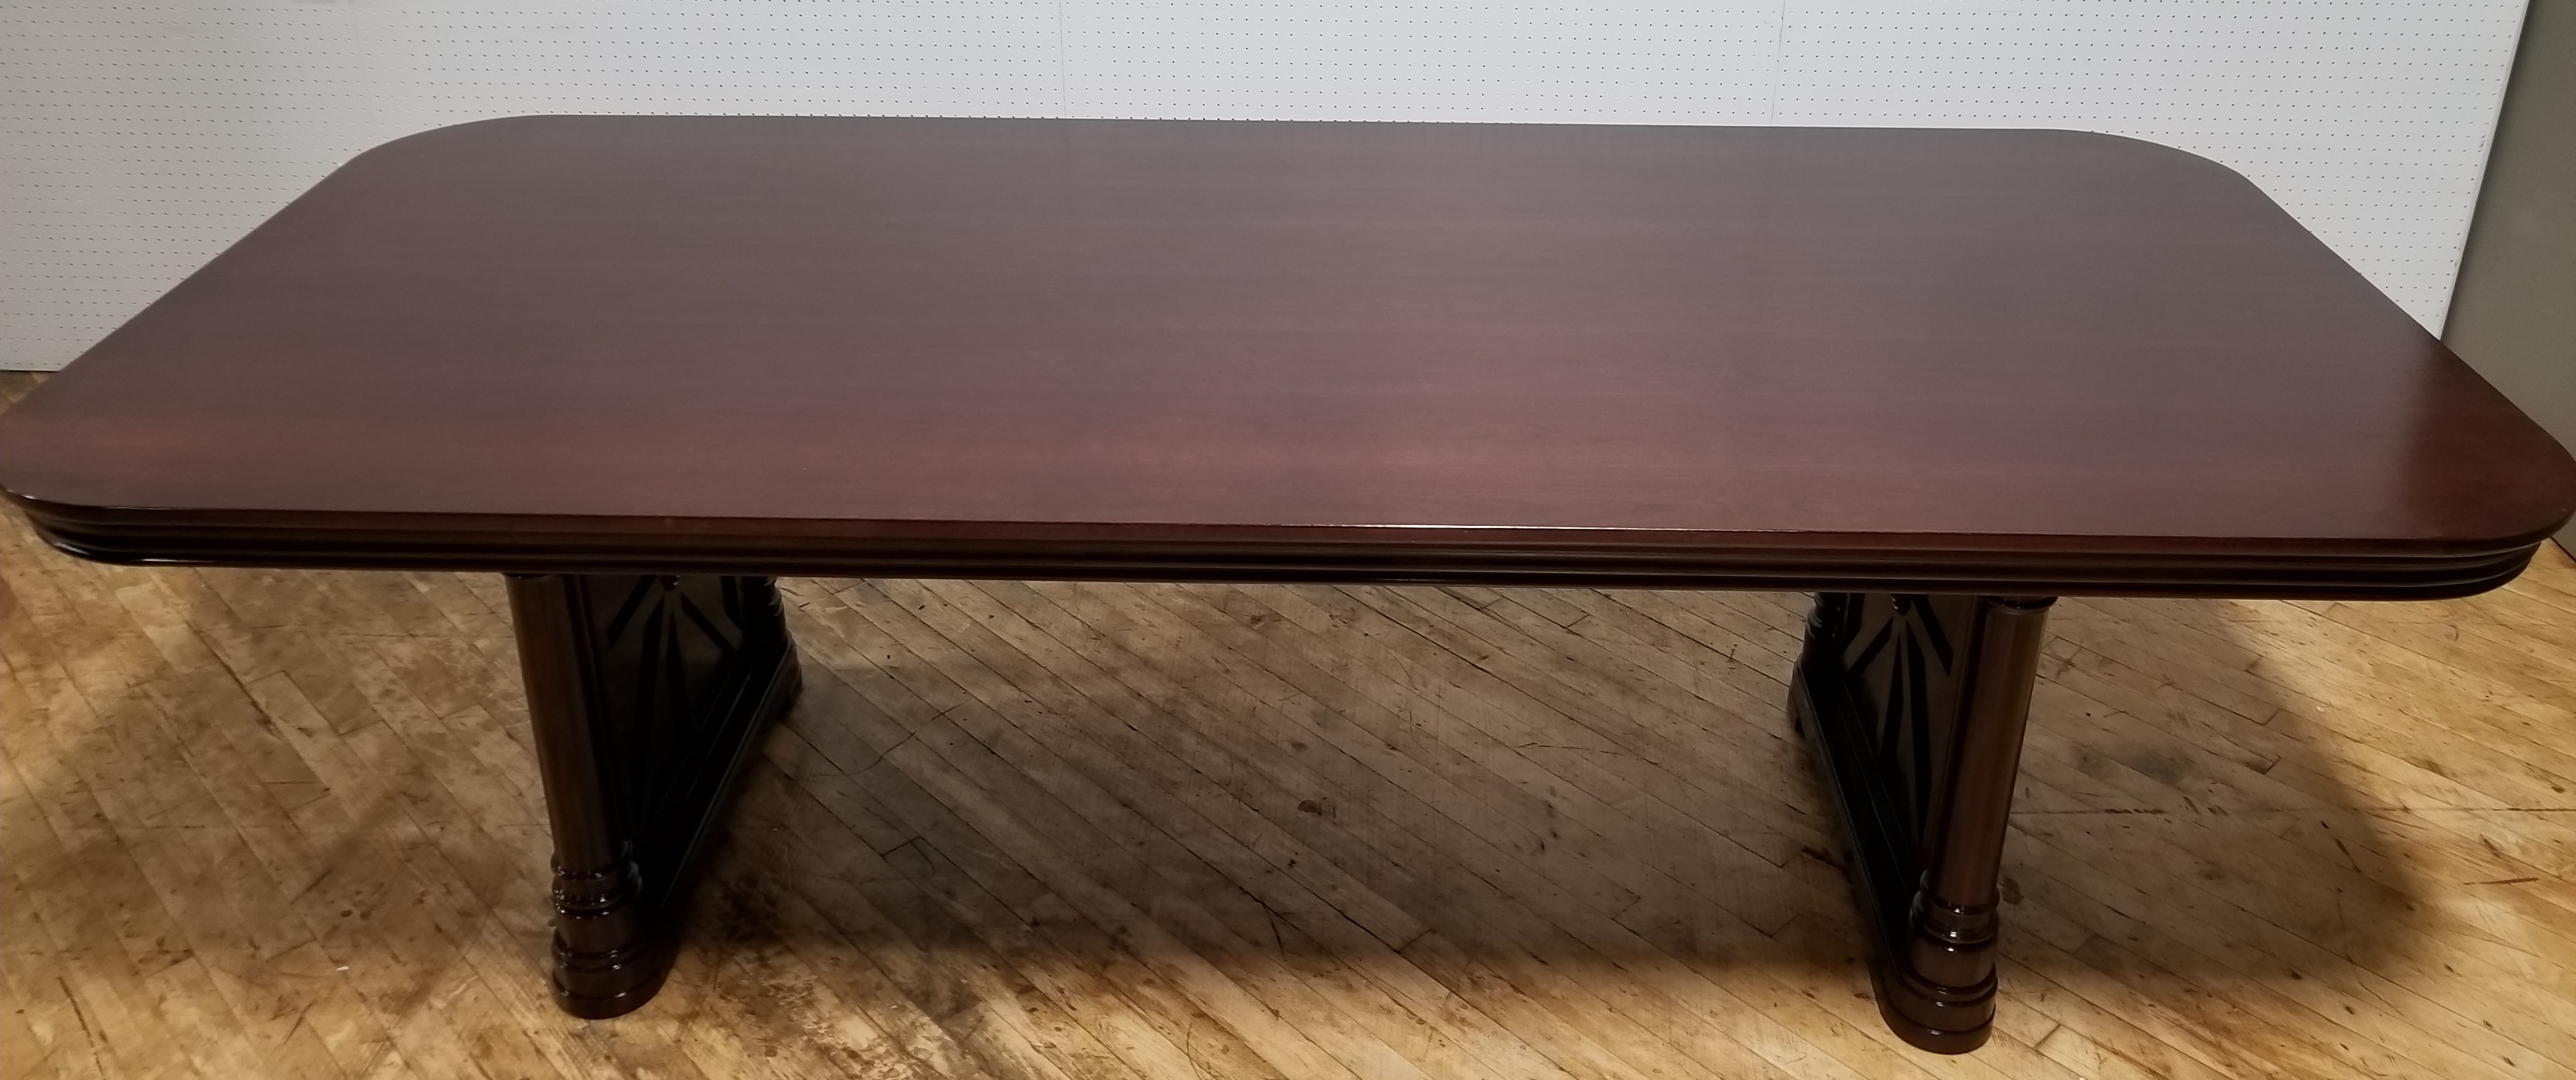 #236A. 44x8 Conference Table